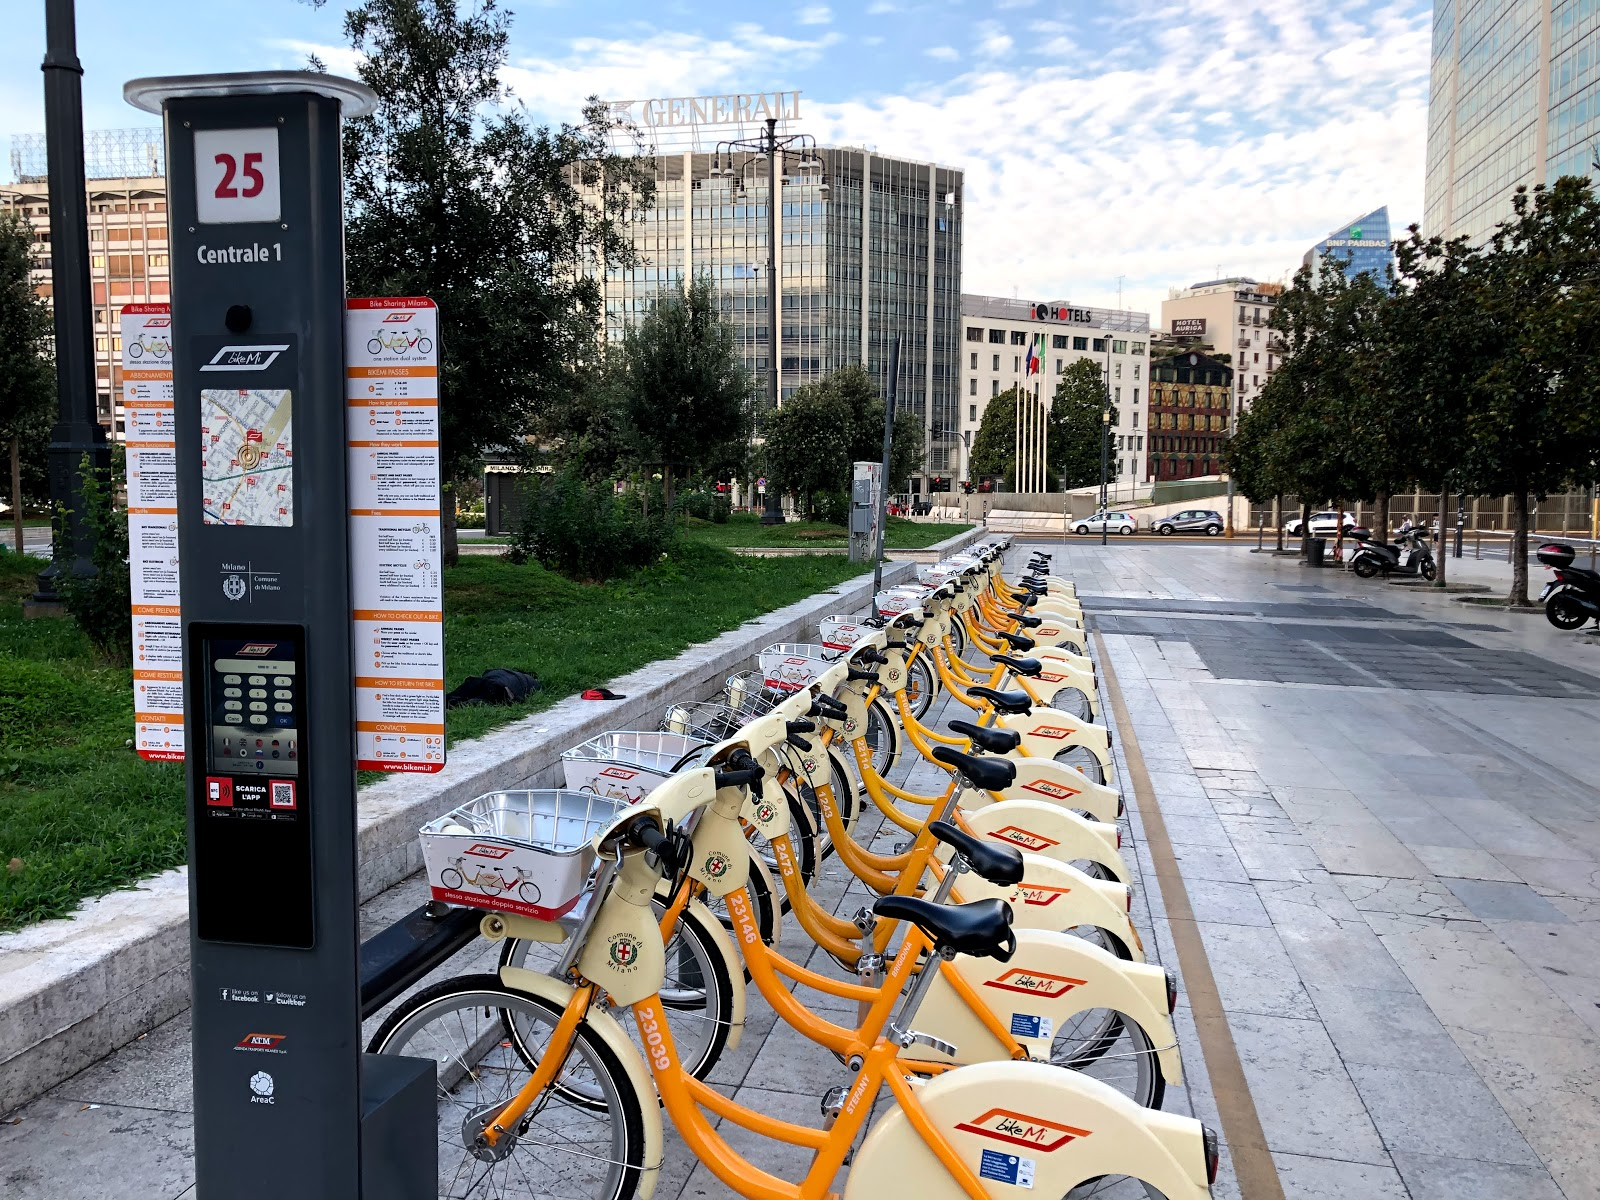 BikeMi a bike sharing program in Milan